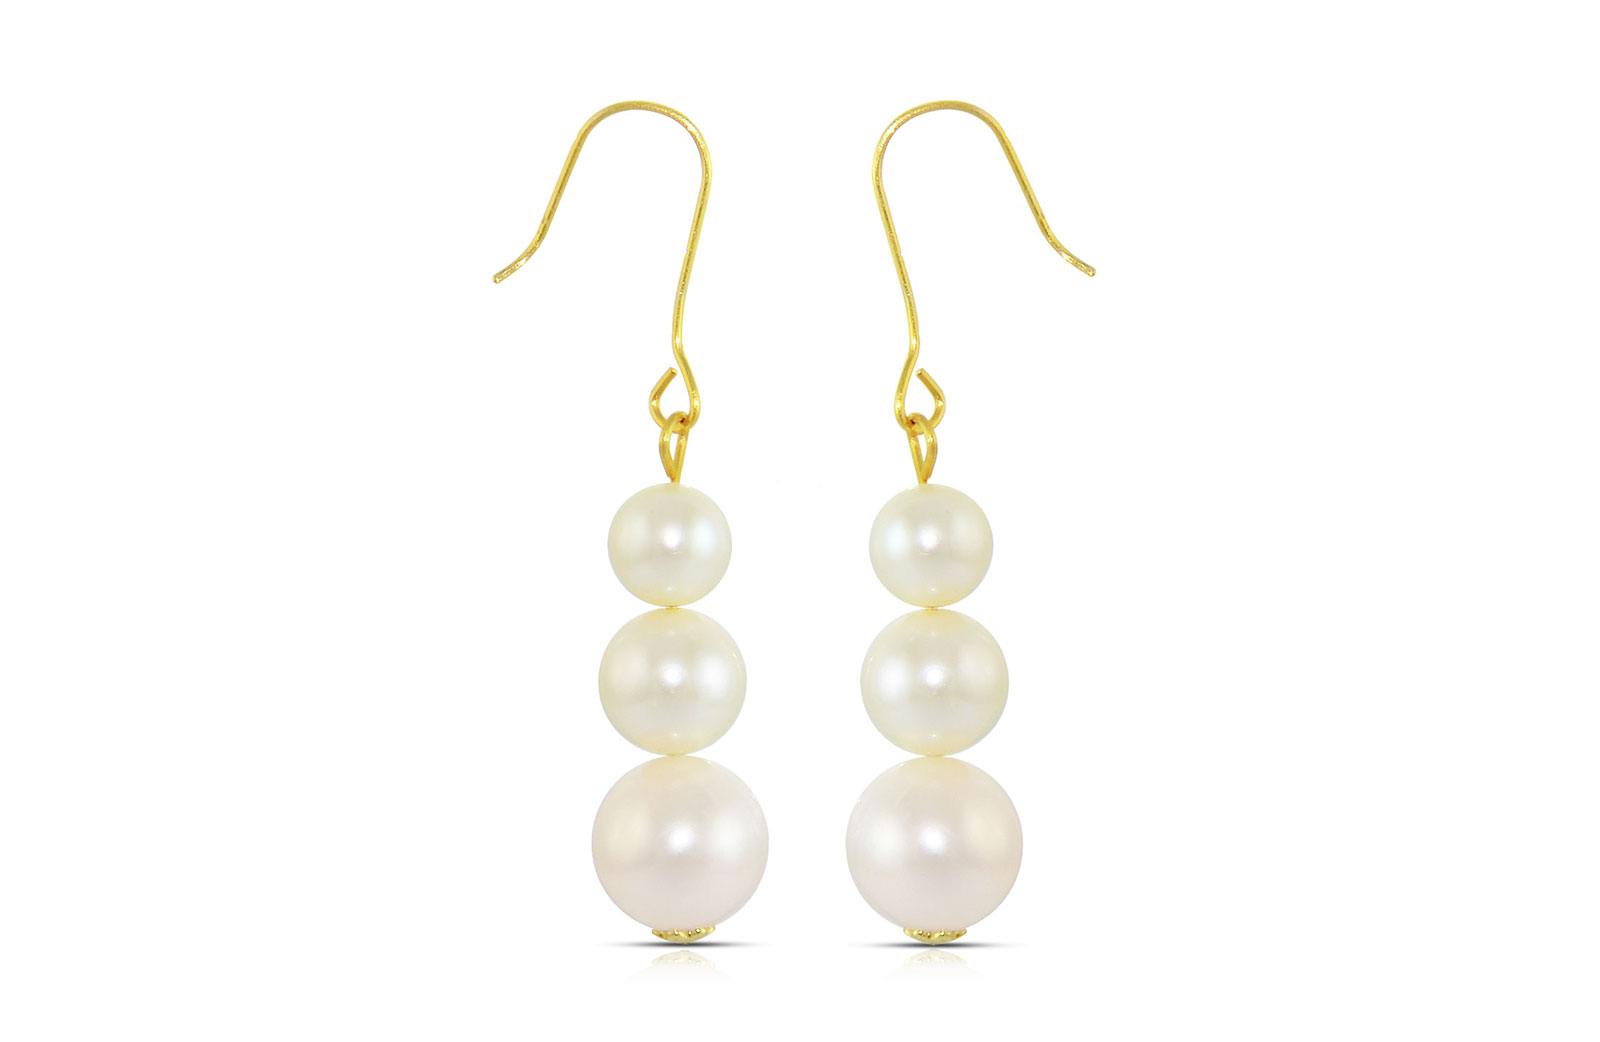 Vera Perla 18K Gold Genuine Pearls Journey Earrings